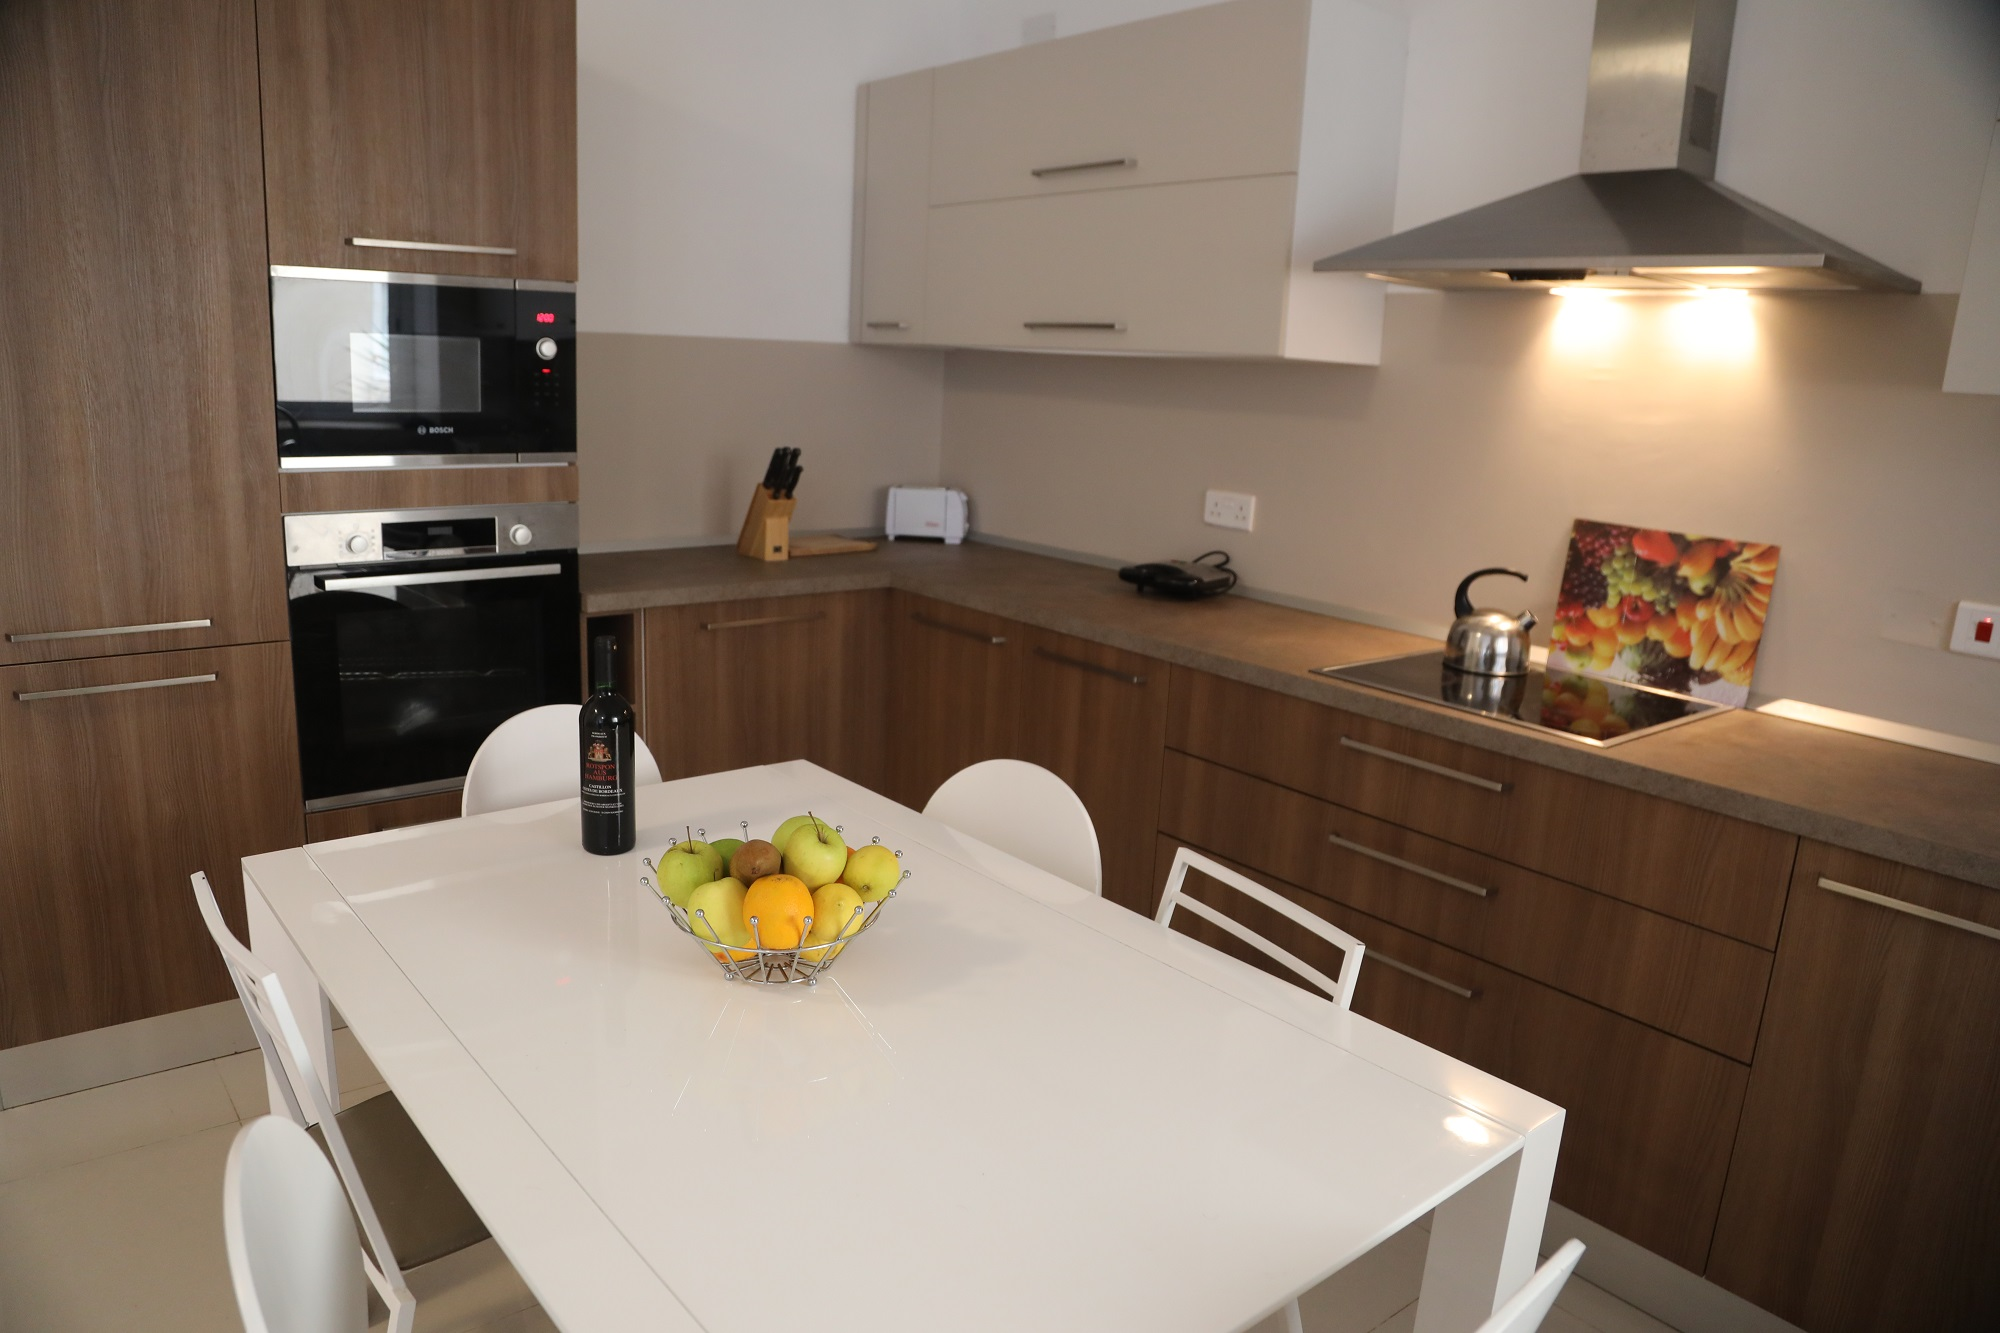 Shared kitchen at BELS Malta student residences in St Pauls Bay